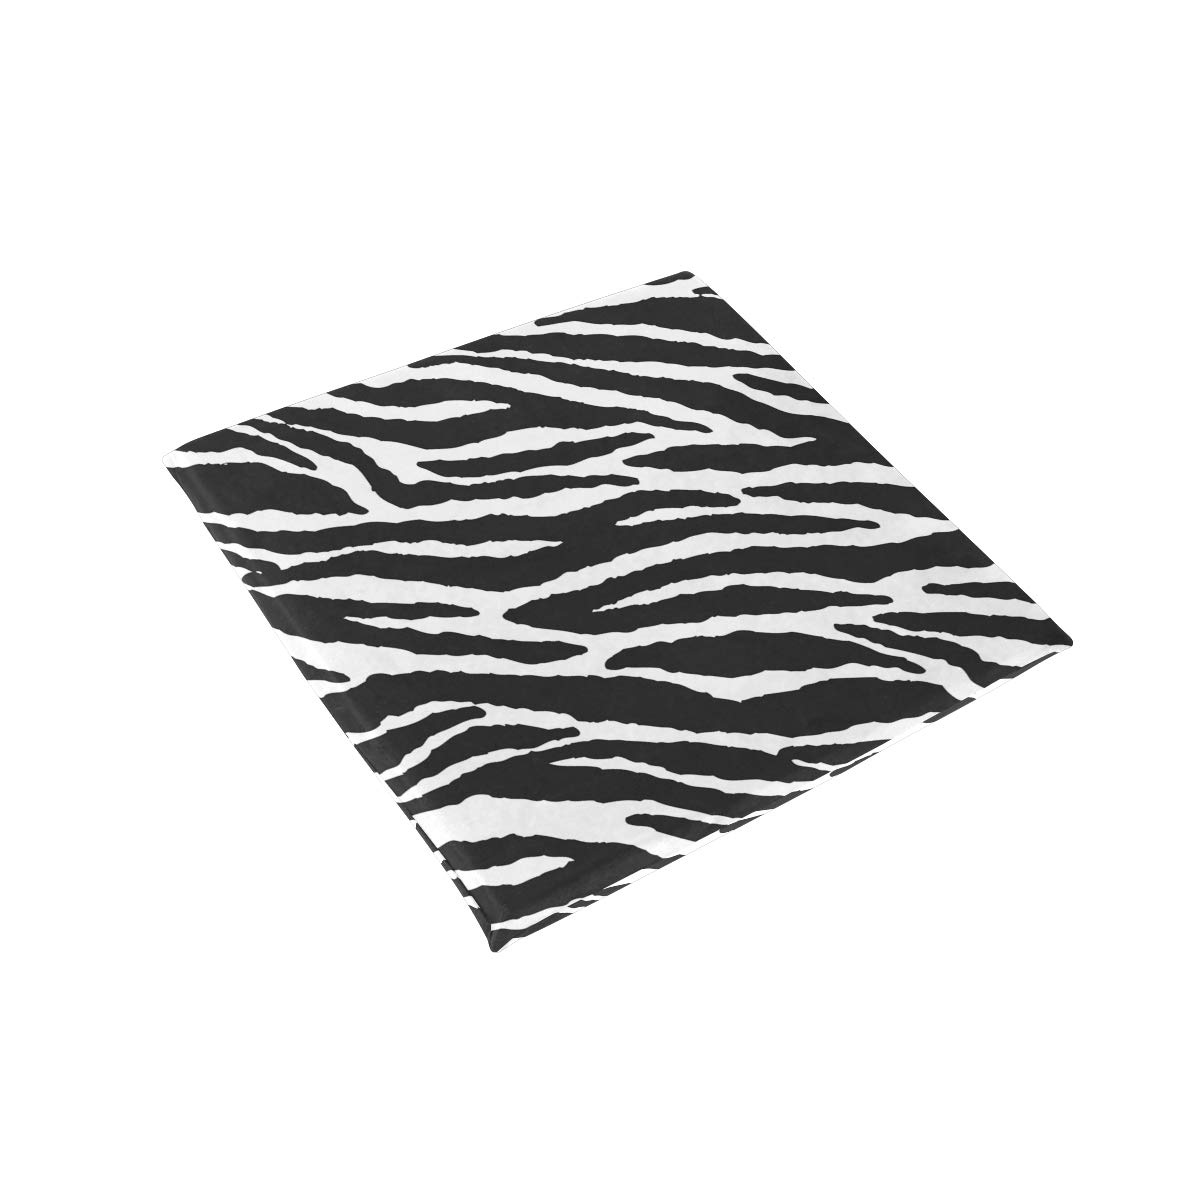 TSWEETHOME Comfort Memory Foam Square Chair Cushion Seat Cushion with Animal Skins Zebra Print Chair Pads for Floors Dining Office Chairs by TSWEETHOME (Image #3)